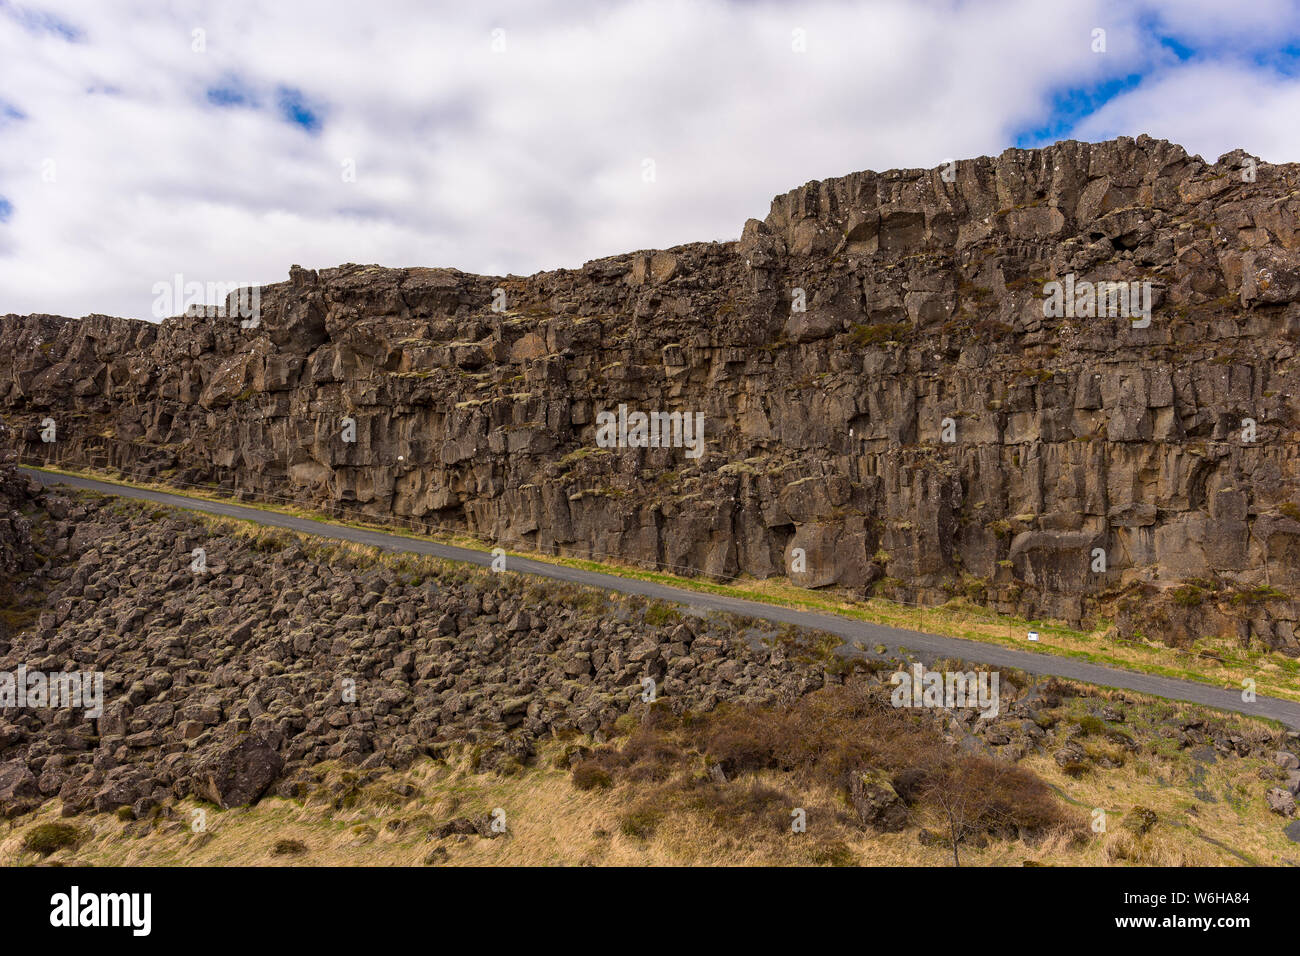 PINGVELLIR NATIONAL PARK, ICELAND - Rock formations at Mid-Atlantic Ridge rift valley, and site of historic national Parliment of Iceland. Stock Photo